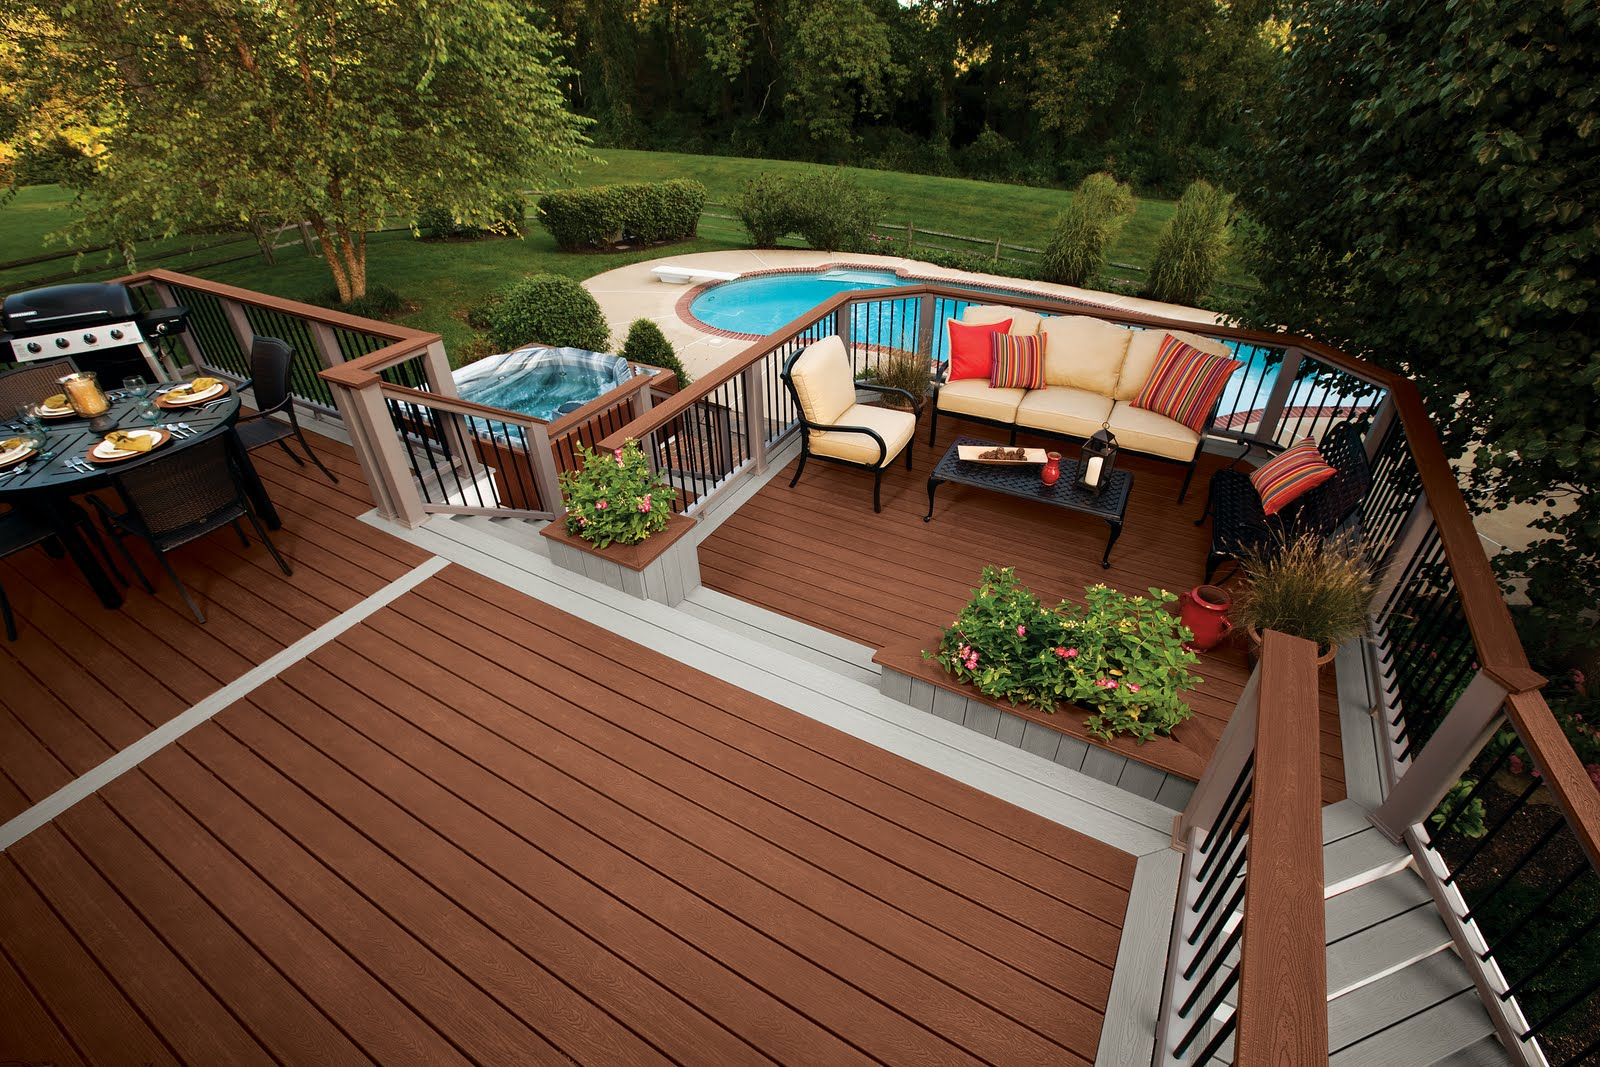 Extending your home with a deck